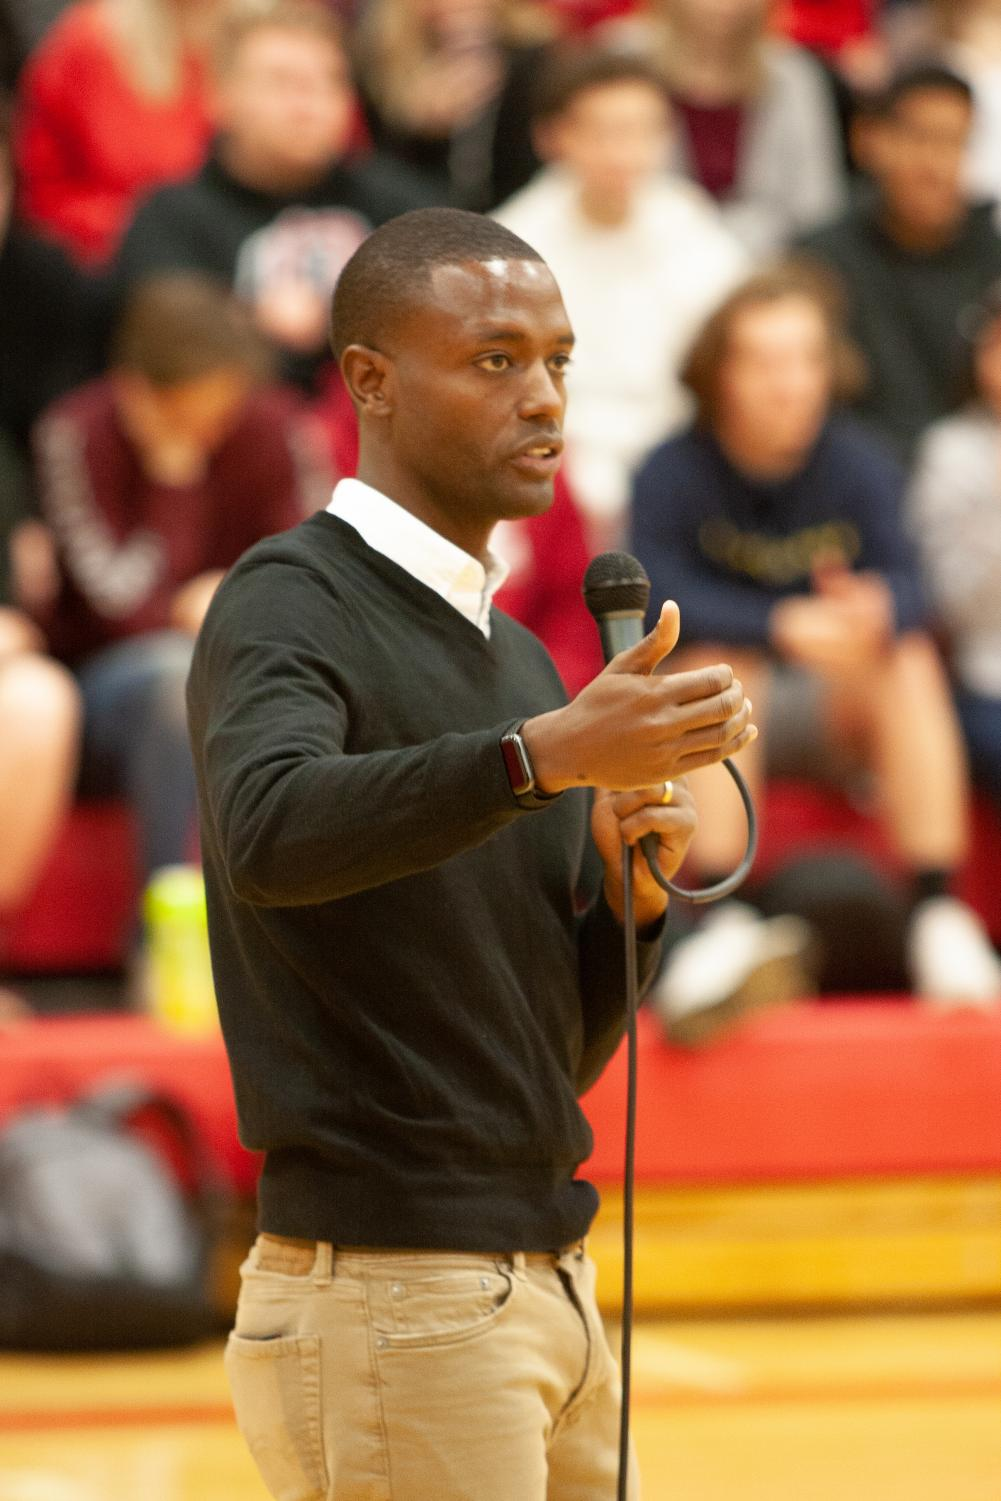 Buey Ray Tut, founder of Aqua Africa, speaks to students at EHS. Tut was chosen as this year's Student Council Speaker.